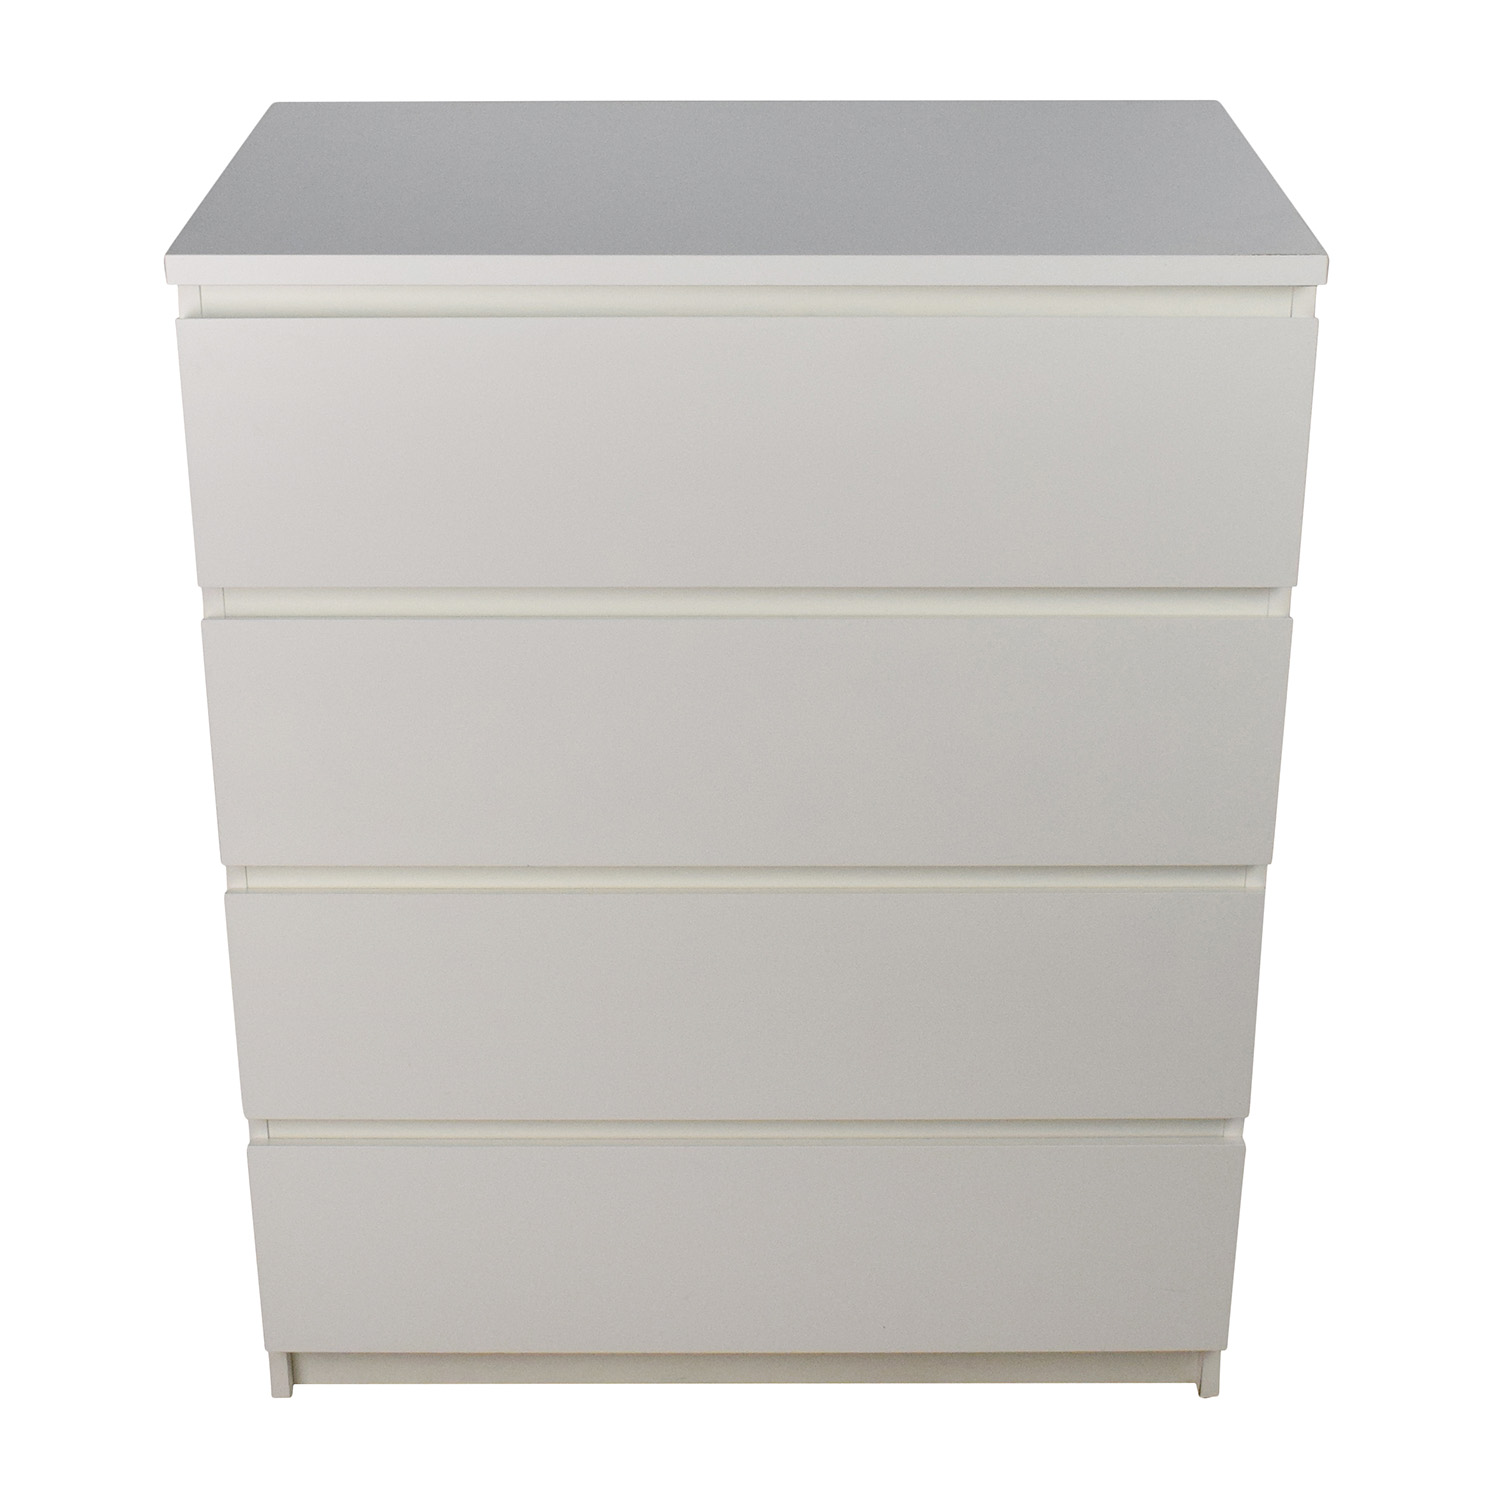 White 4-Drawer Dresser